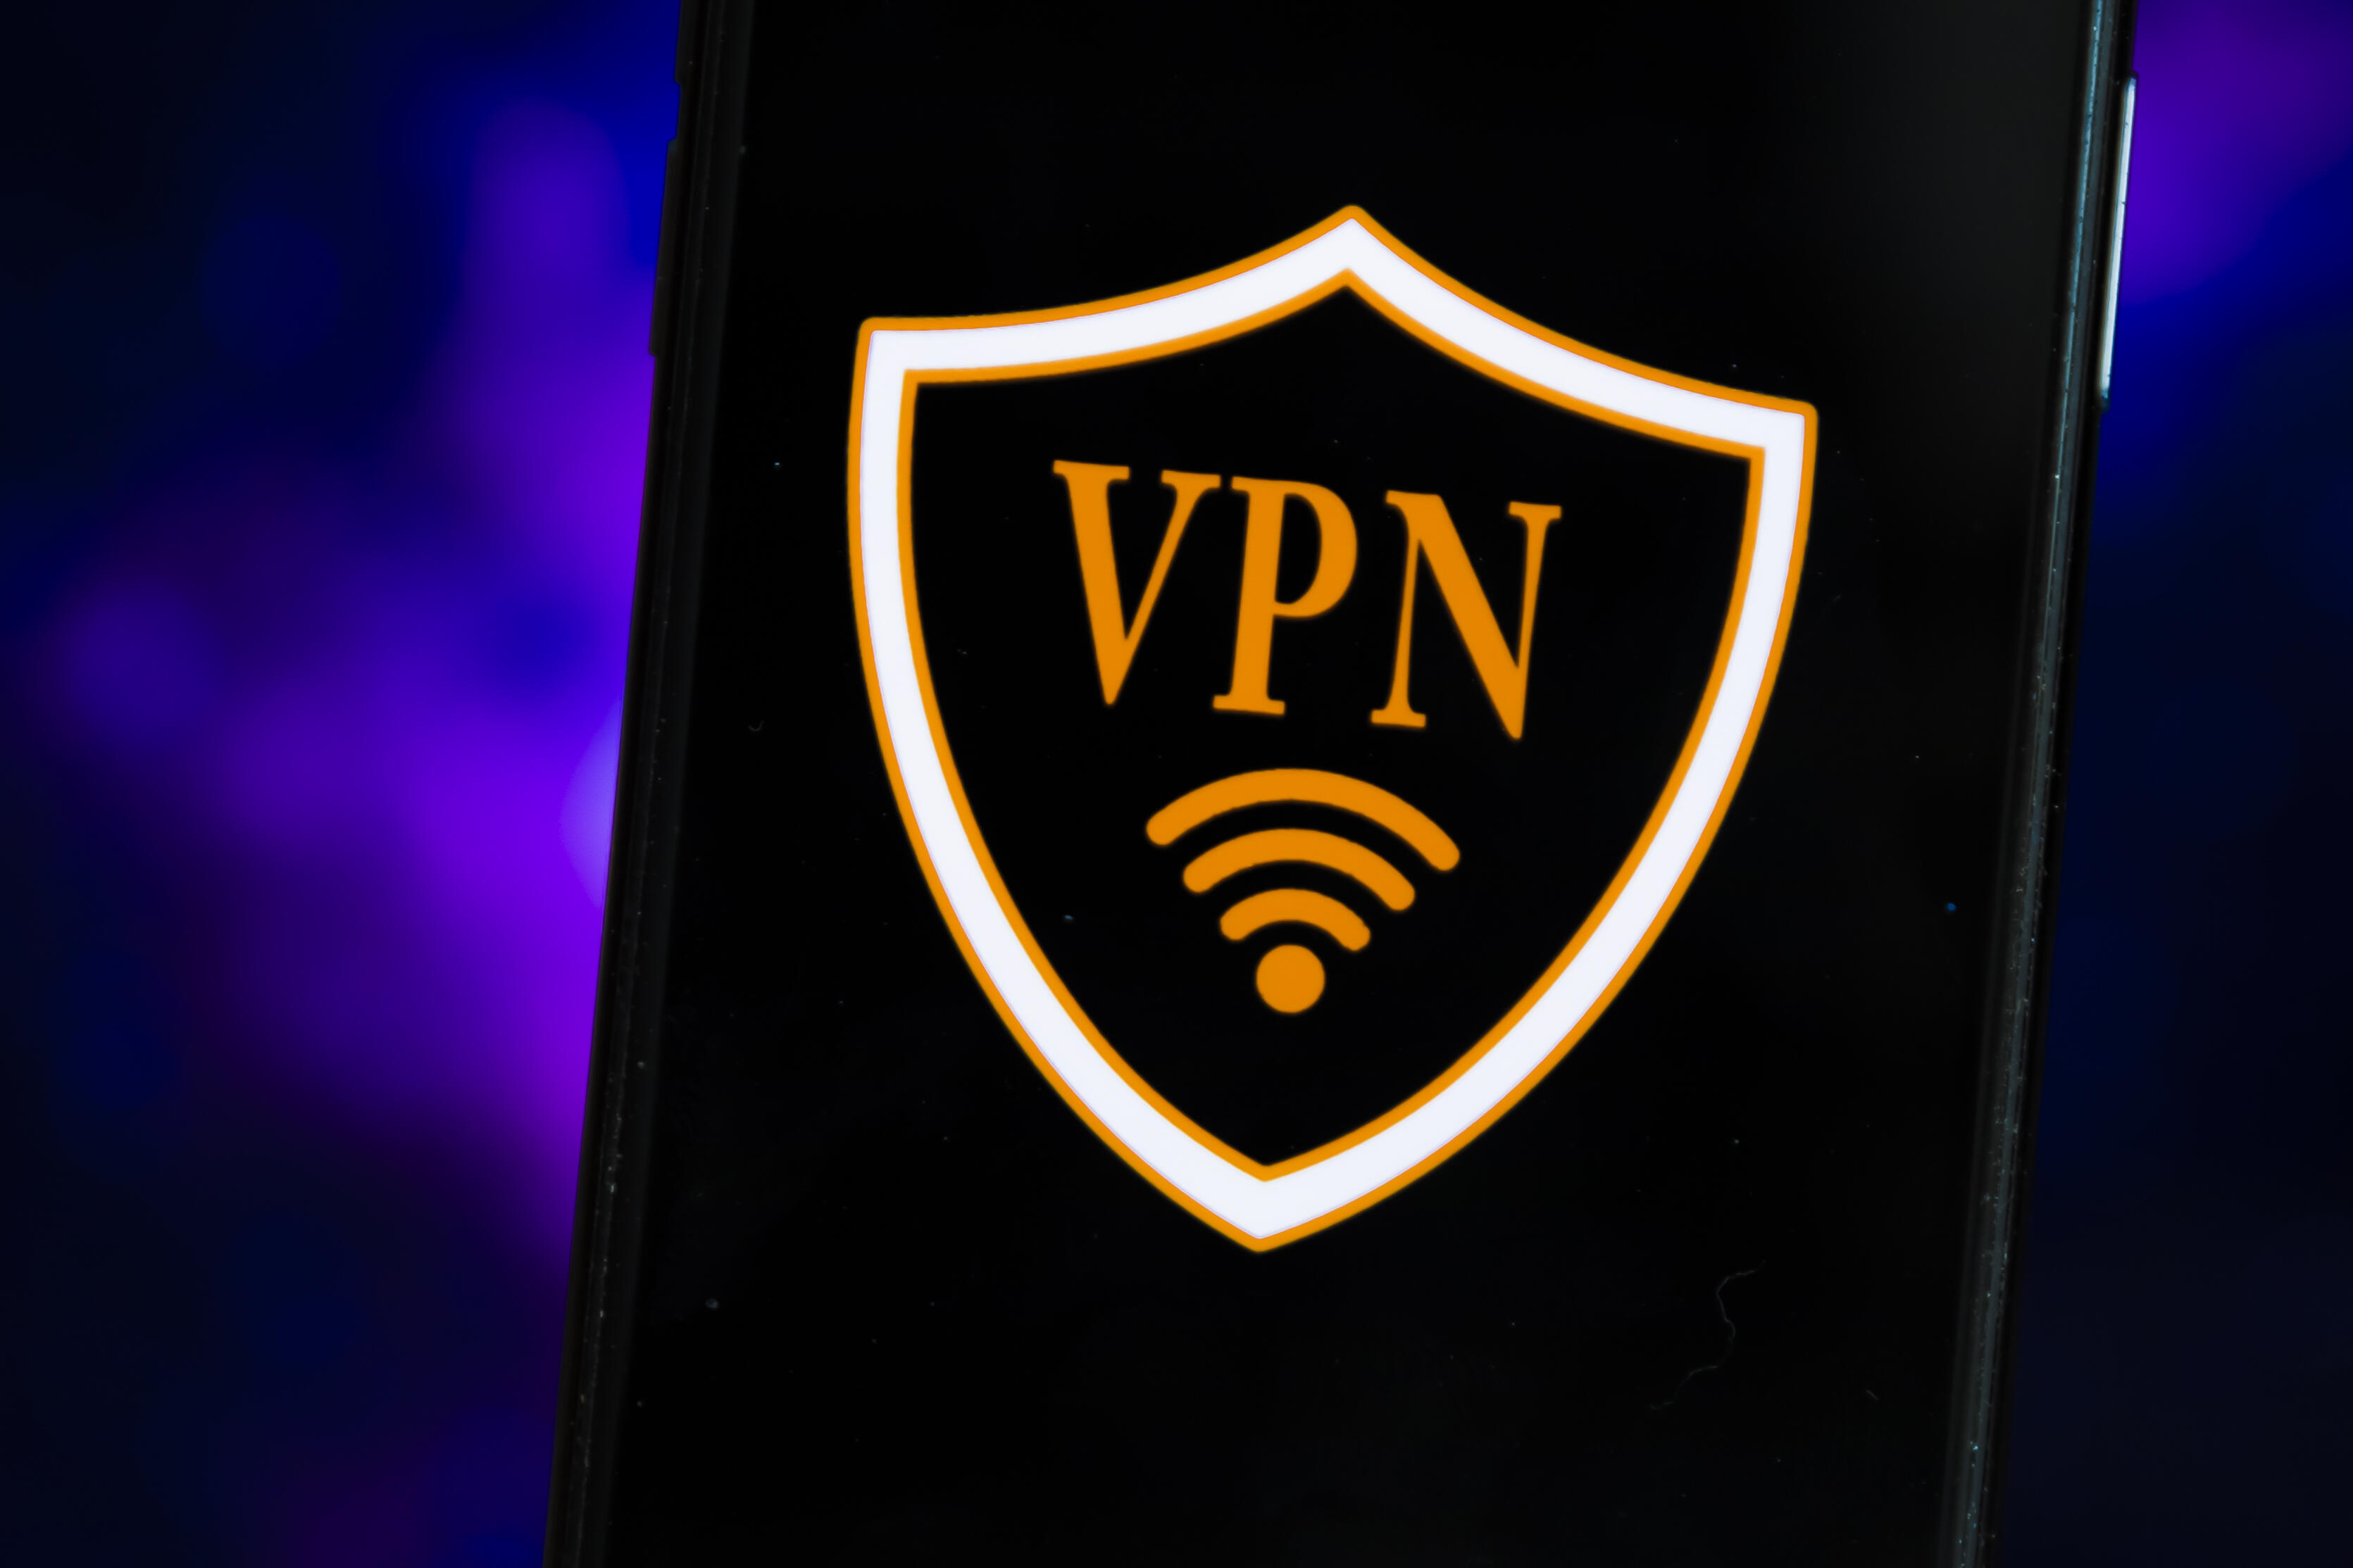 VPN for online security and privacy